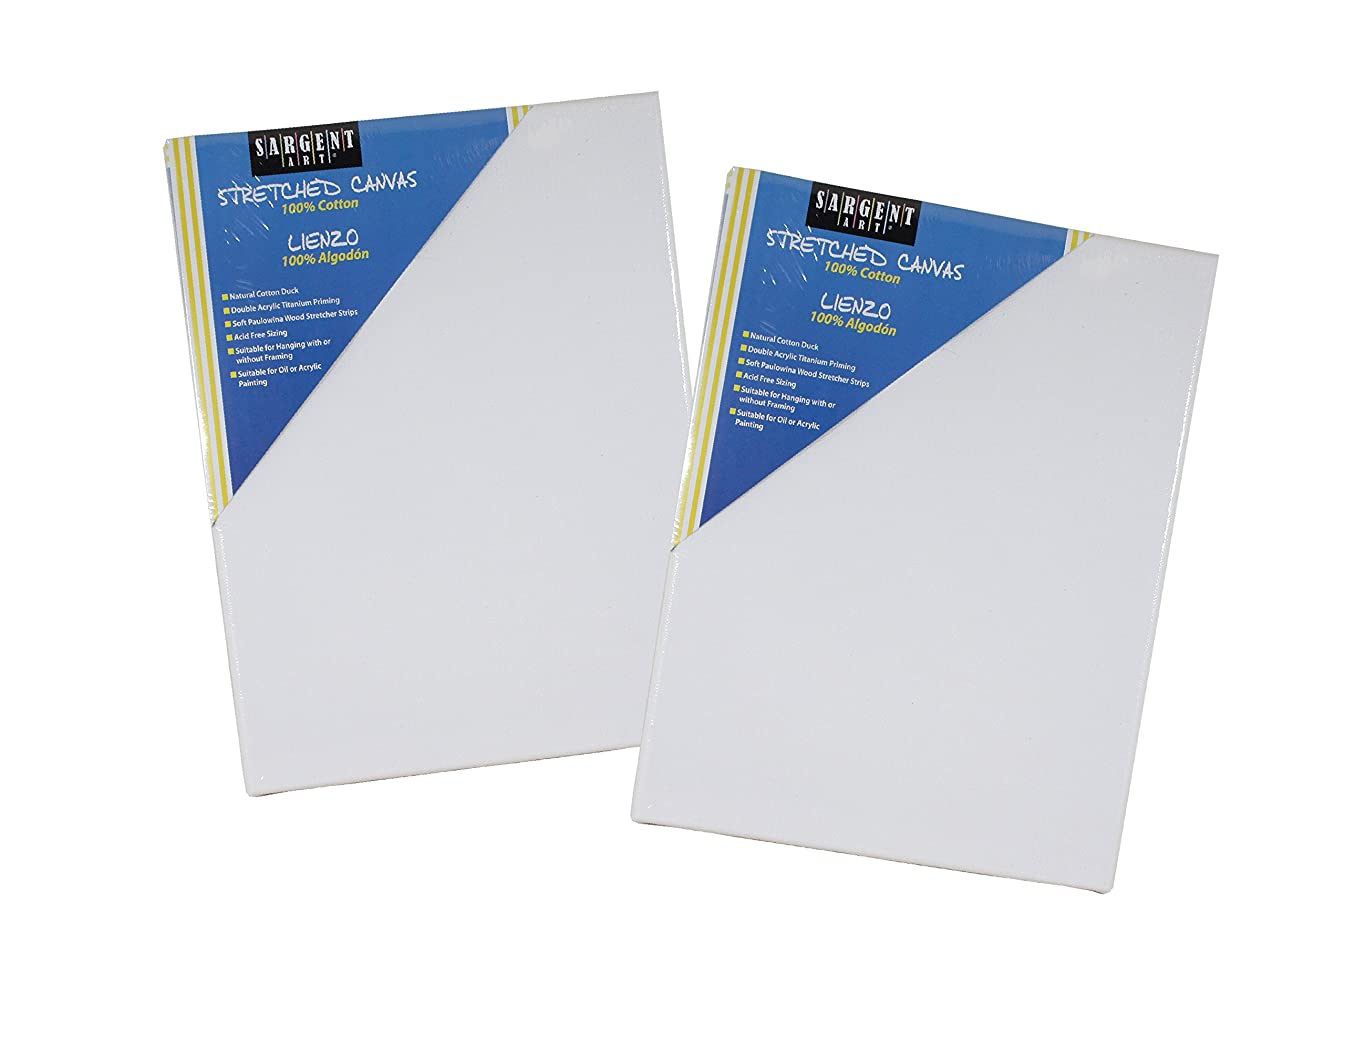 Sargent Art Value Pack 18 x 24 Inch Stretched Canvas Pack of 2, 2 Piece